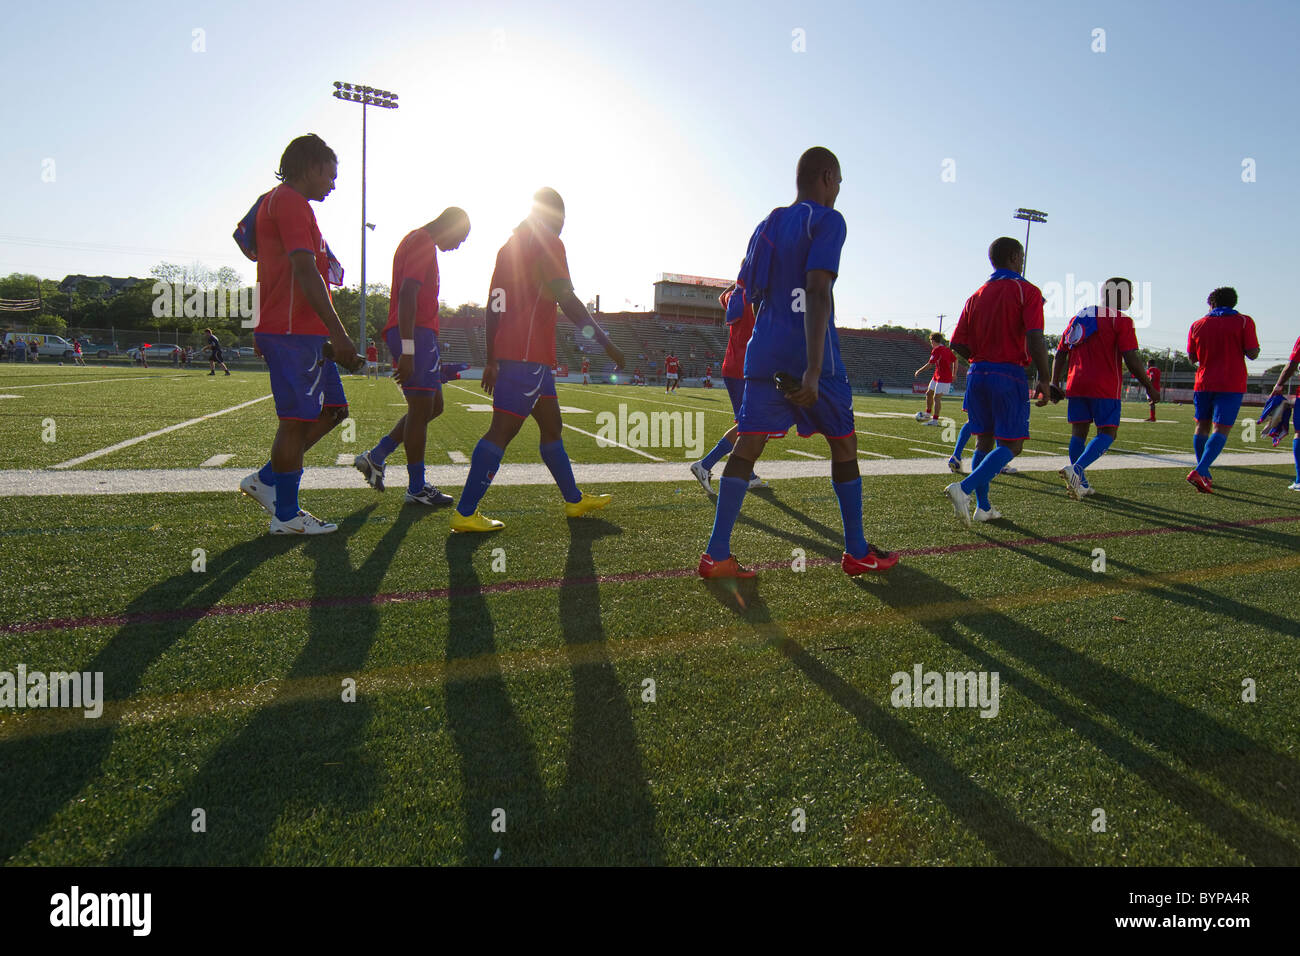 Haitian National Soccer team members walk to bench before exhibition match in Austin Texas. - Stock Image